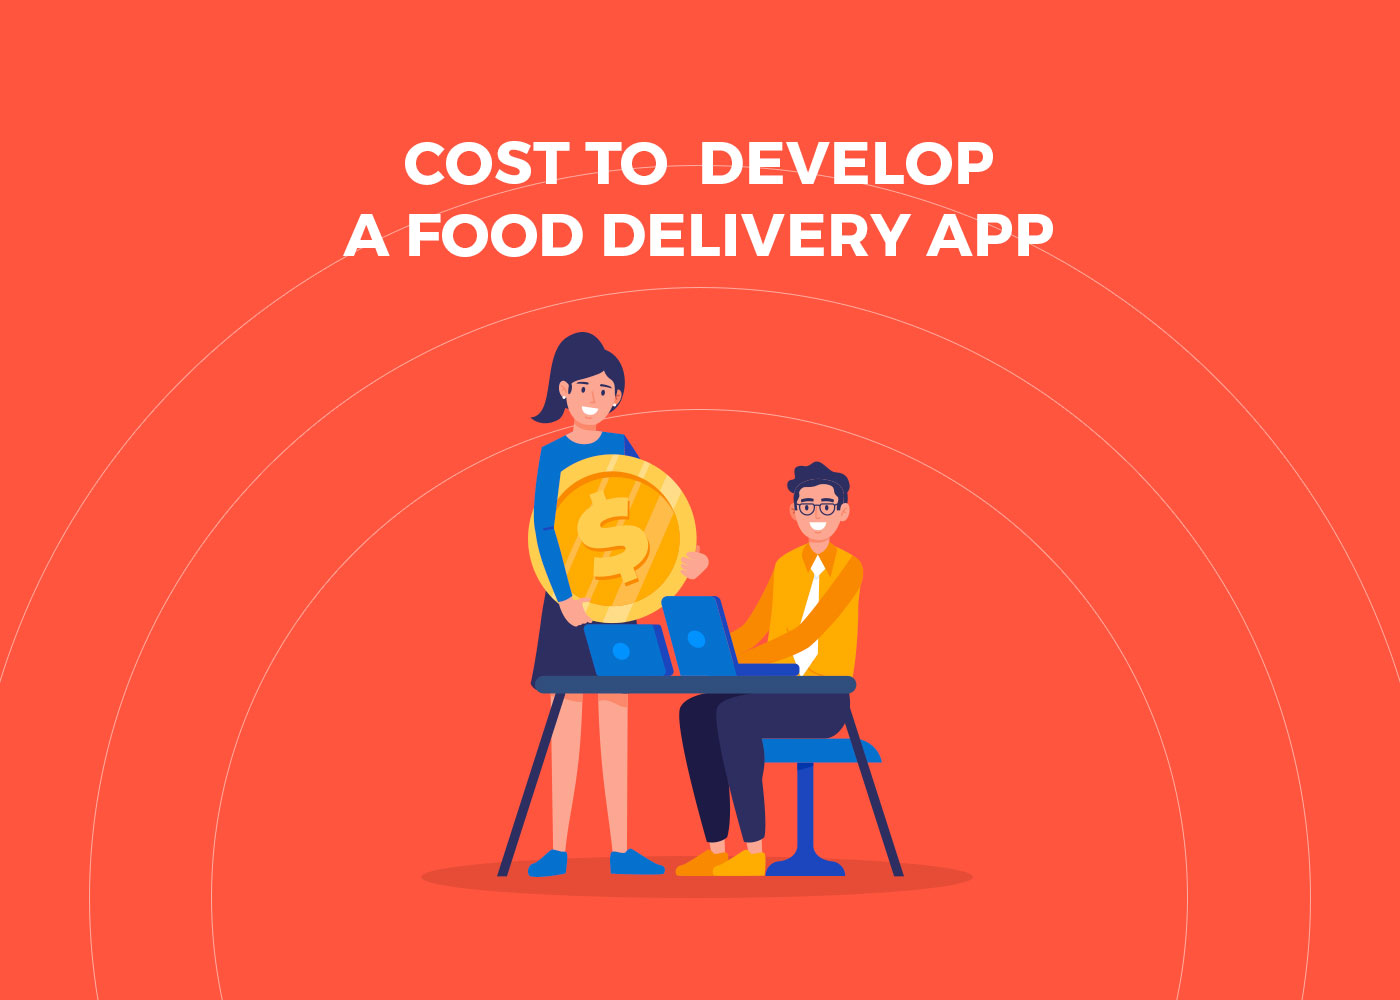 Cost to develop a food delivery app